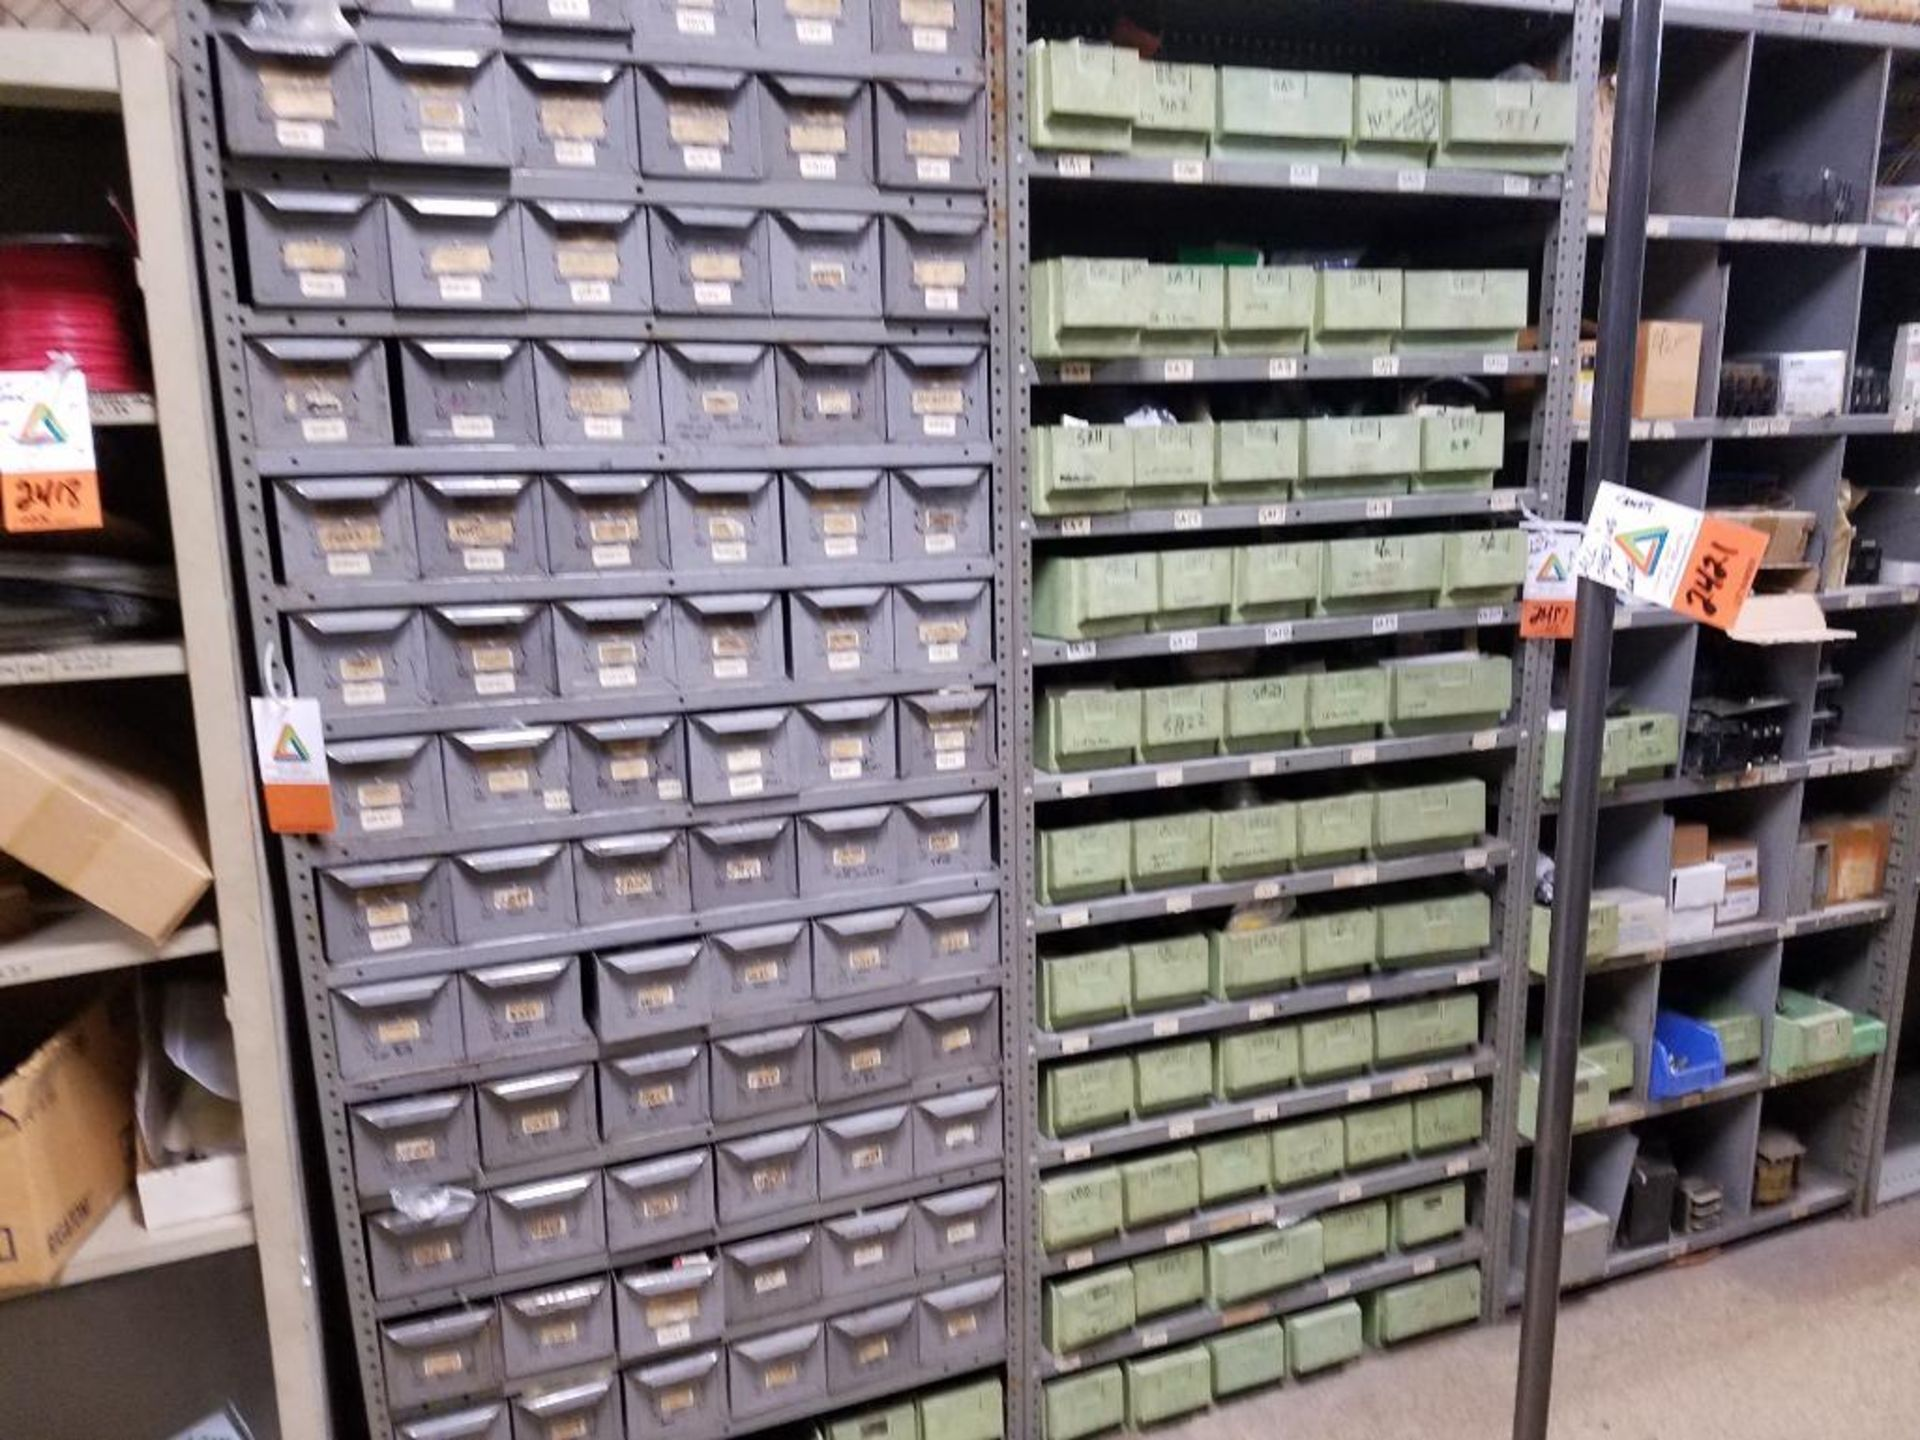 all shelving and storage units located in MRO room - Image 10 of 11